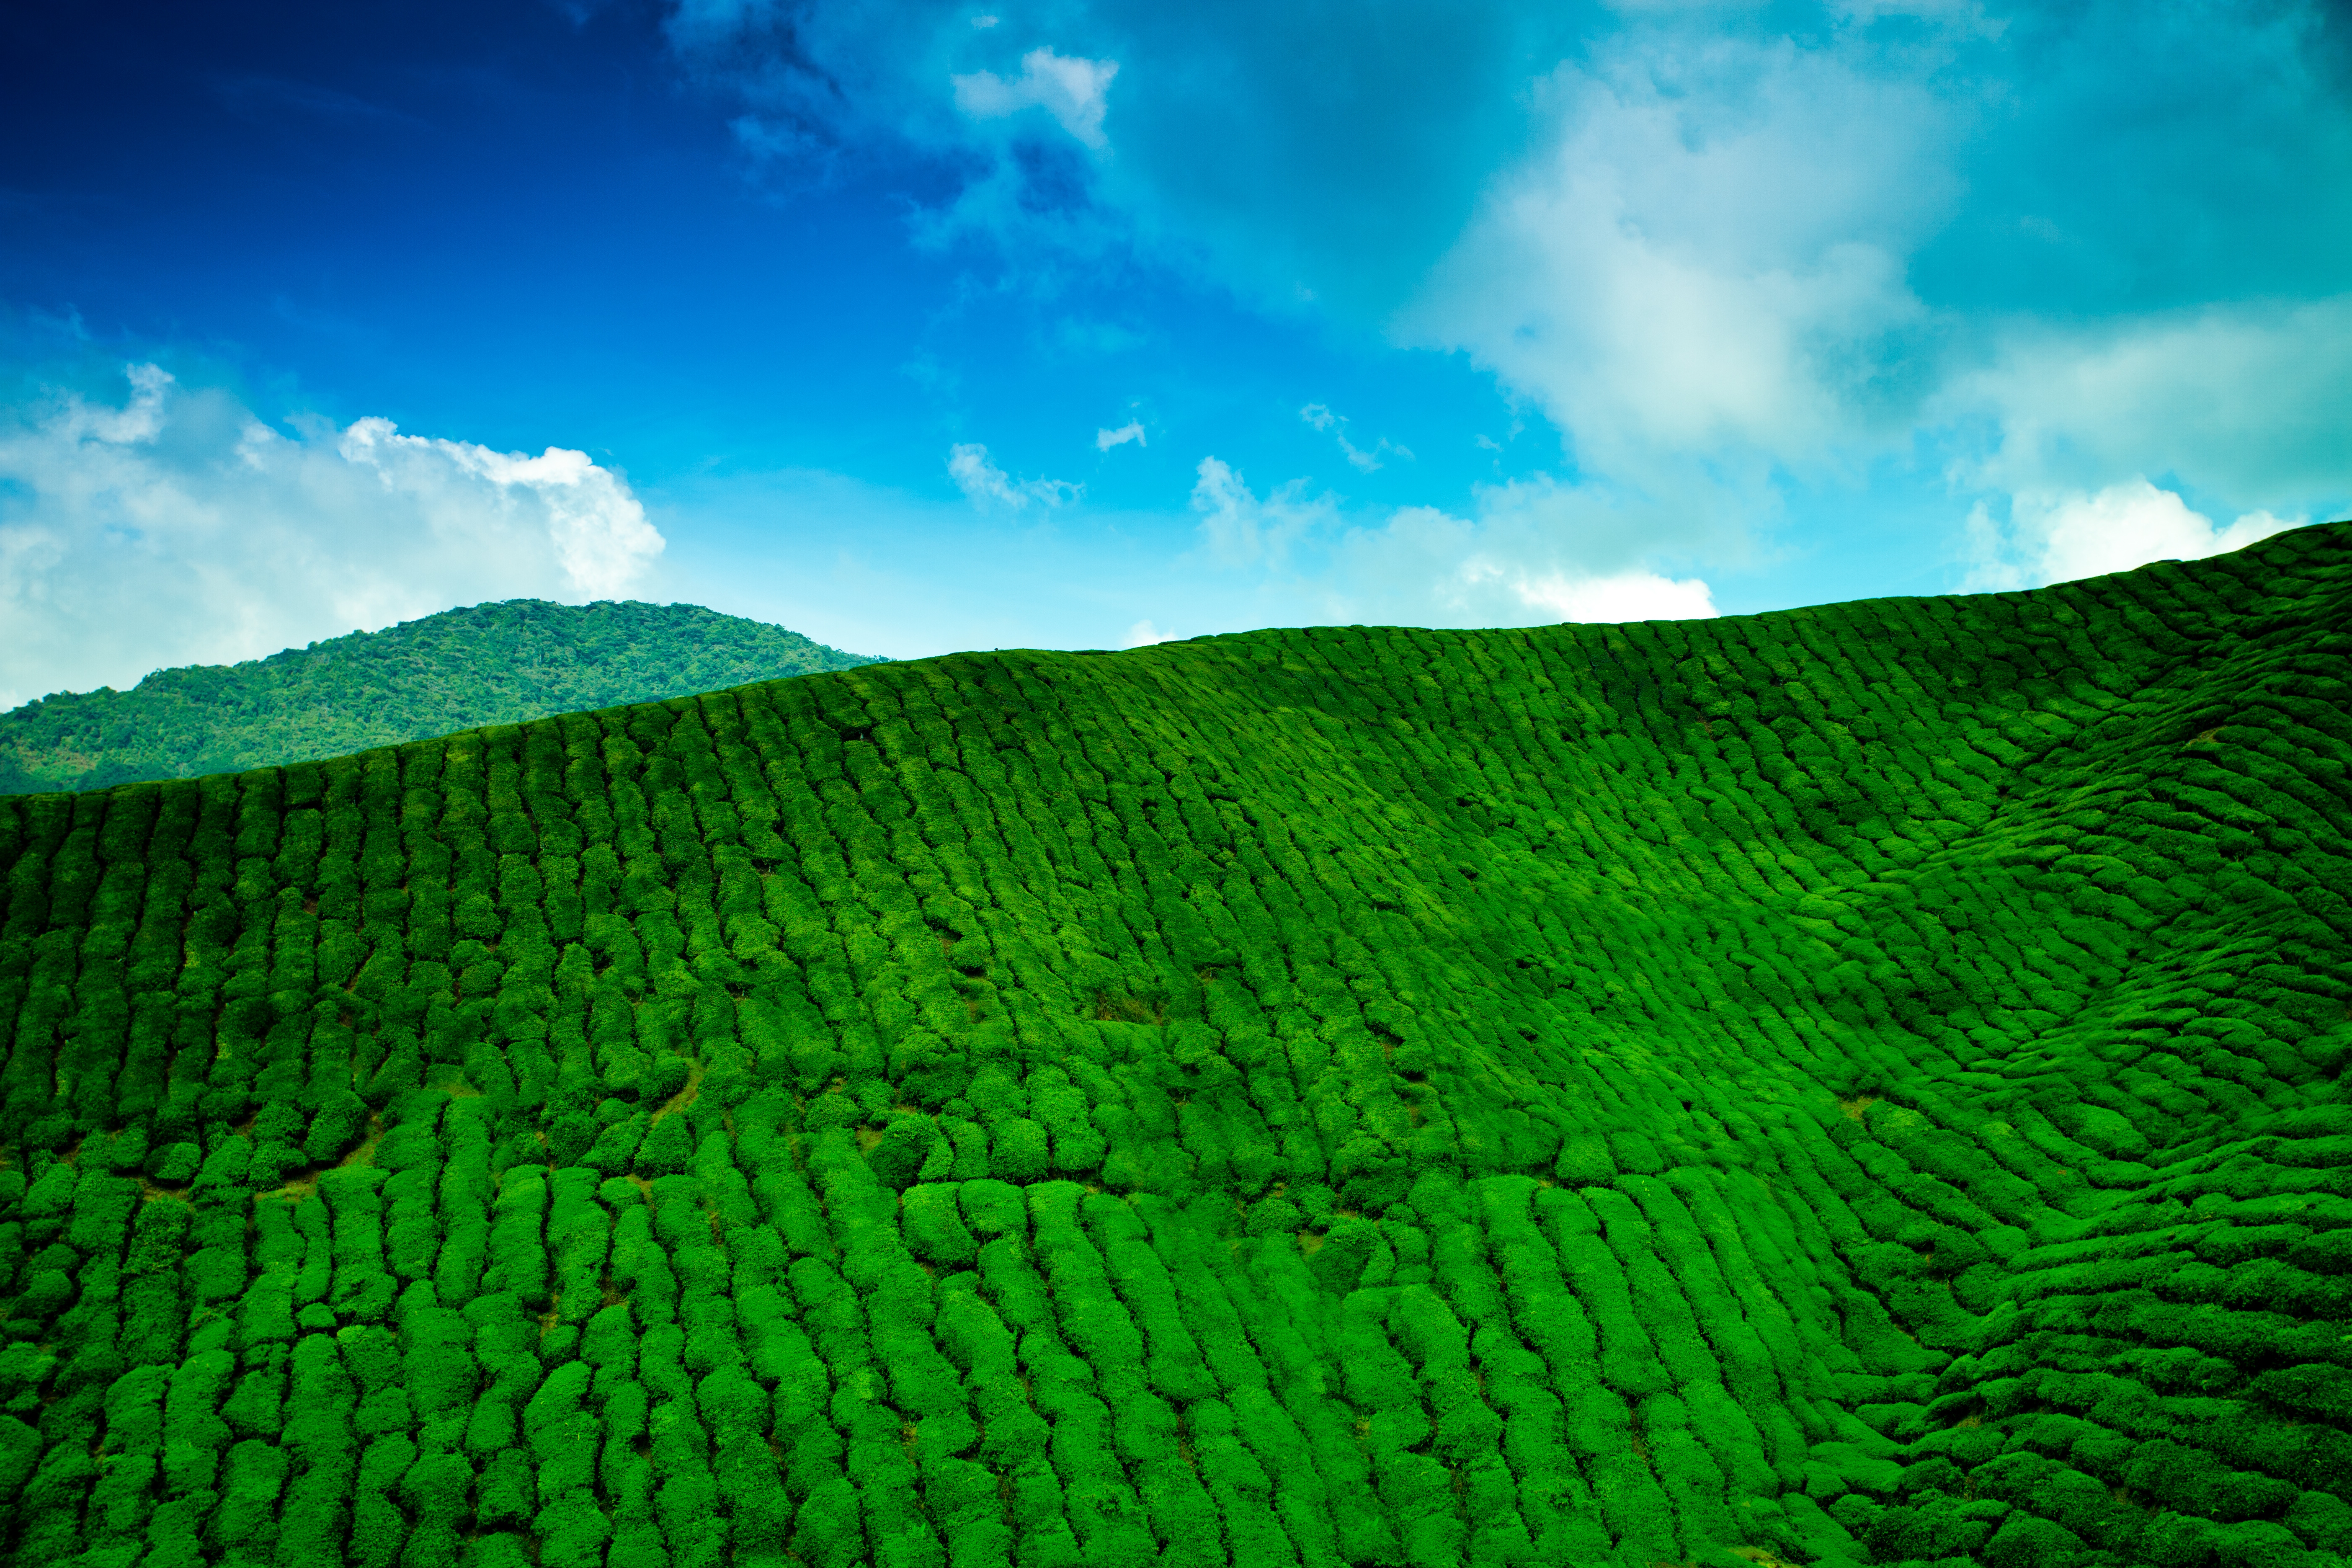 73814 download wallpaper Nature, Mountains, Greens, Height, Plantation, Tea screensavers and pictures for free